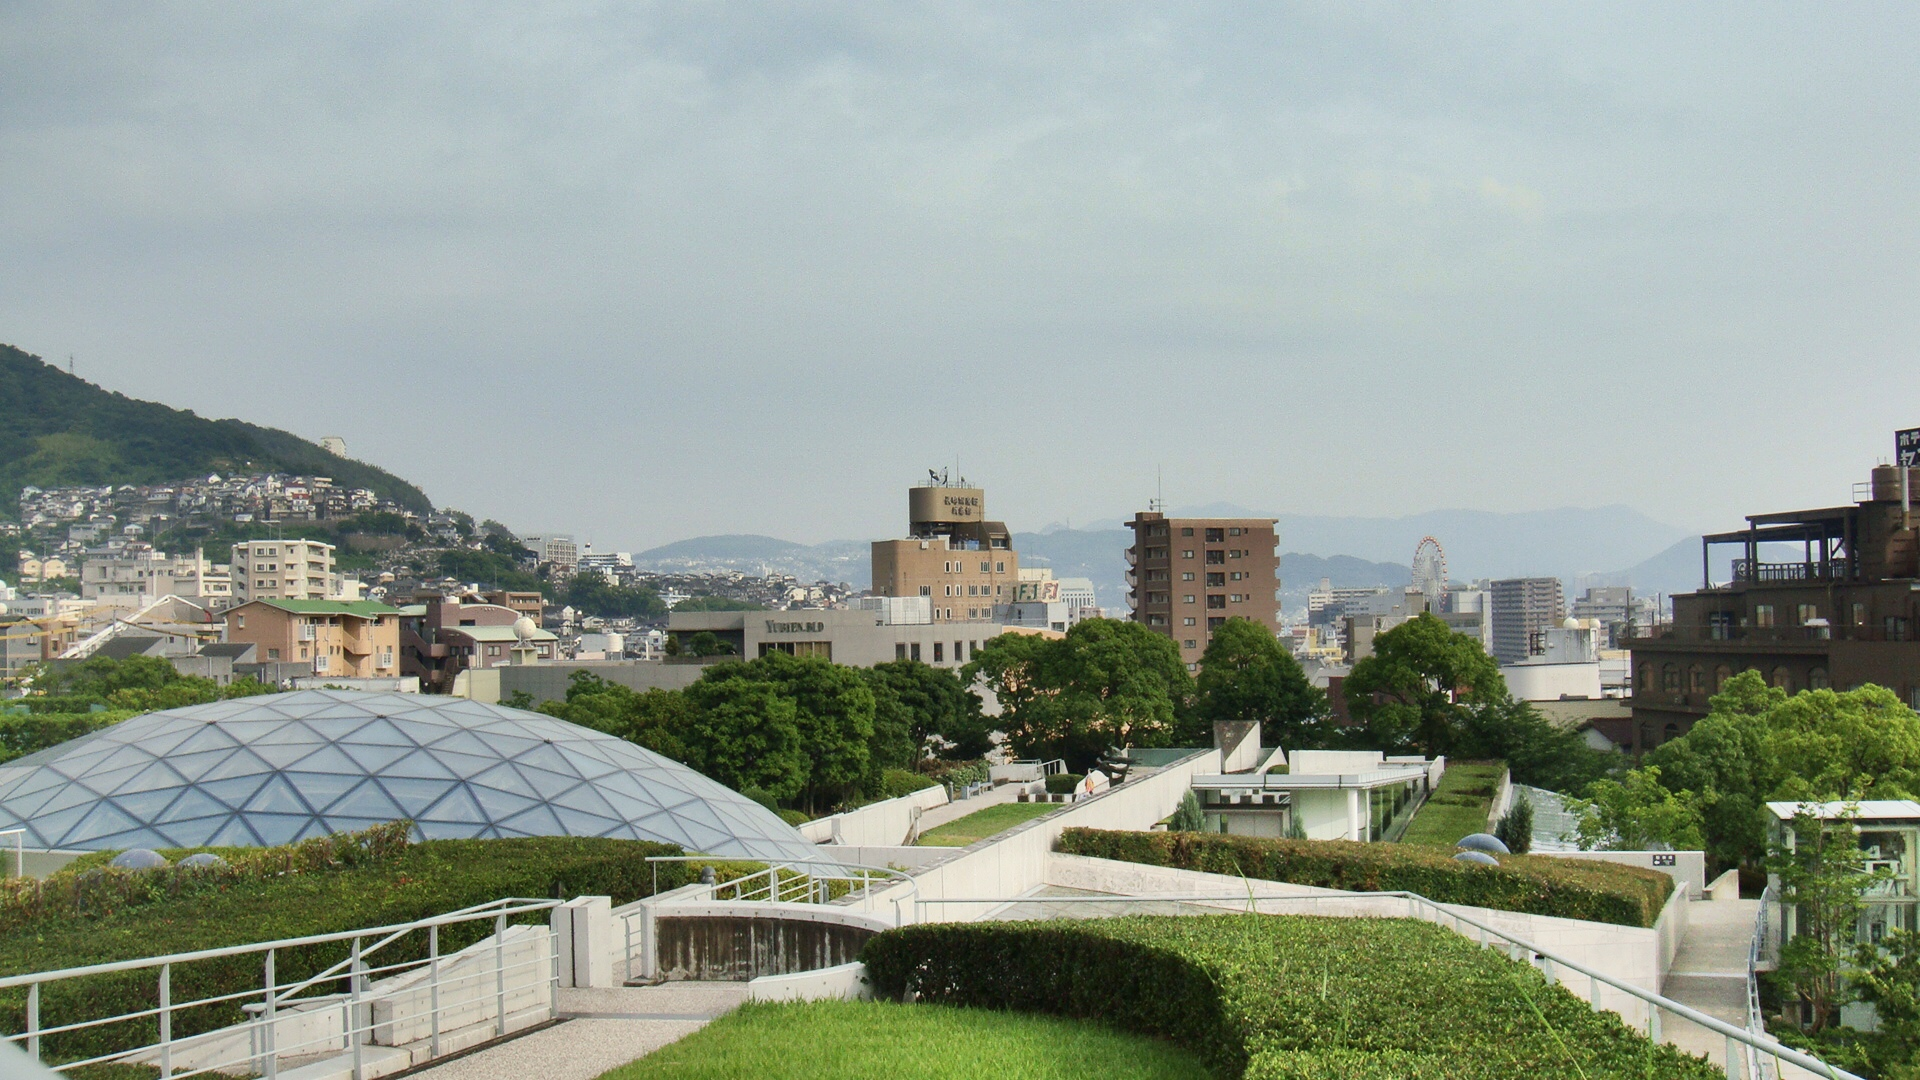 7 Best Things To Do in Nagasaki, Japan [with Suggested Tours]